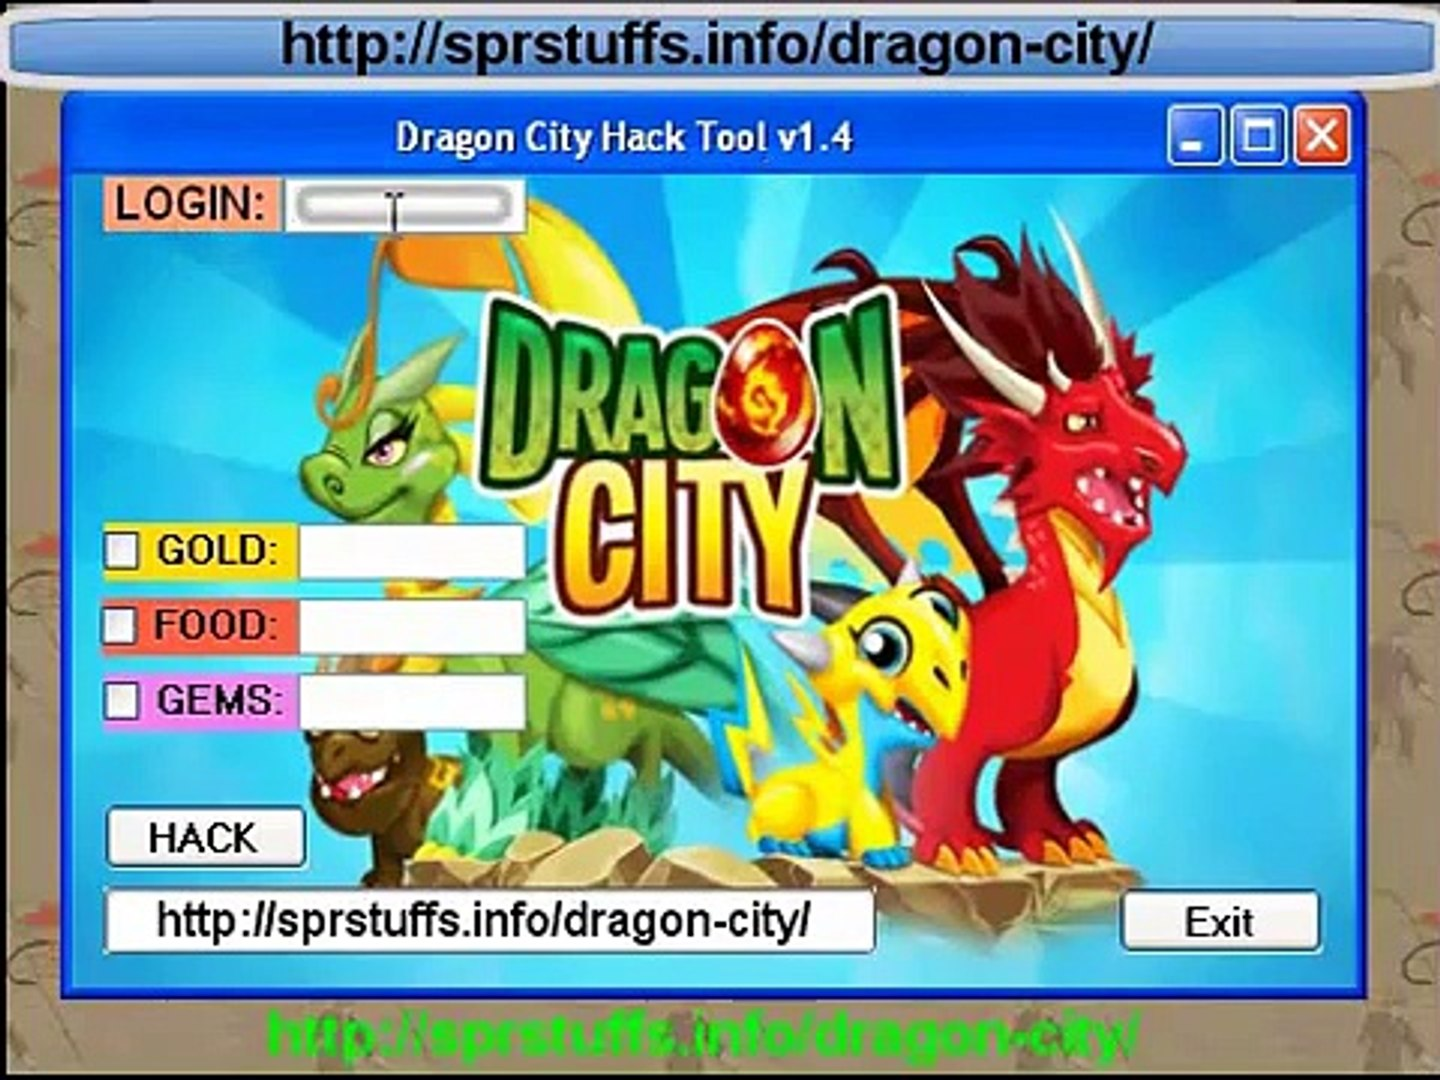 Dragon City Hack Tool Cheats for FB iOS iPhone iPad iPod and Android